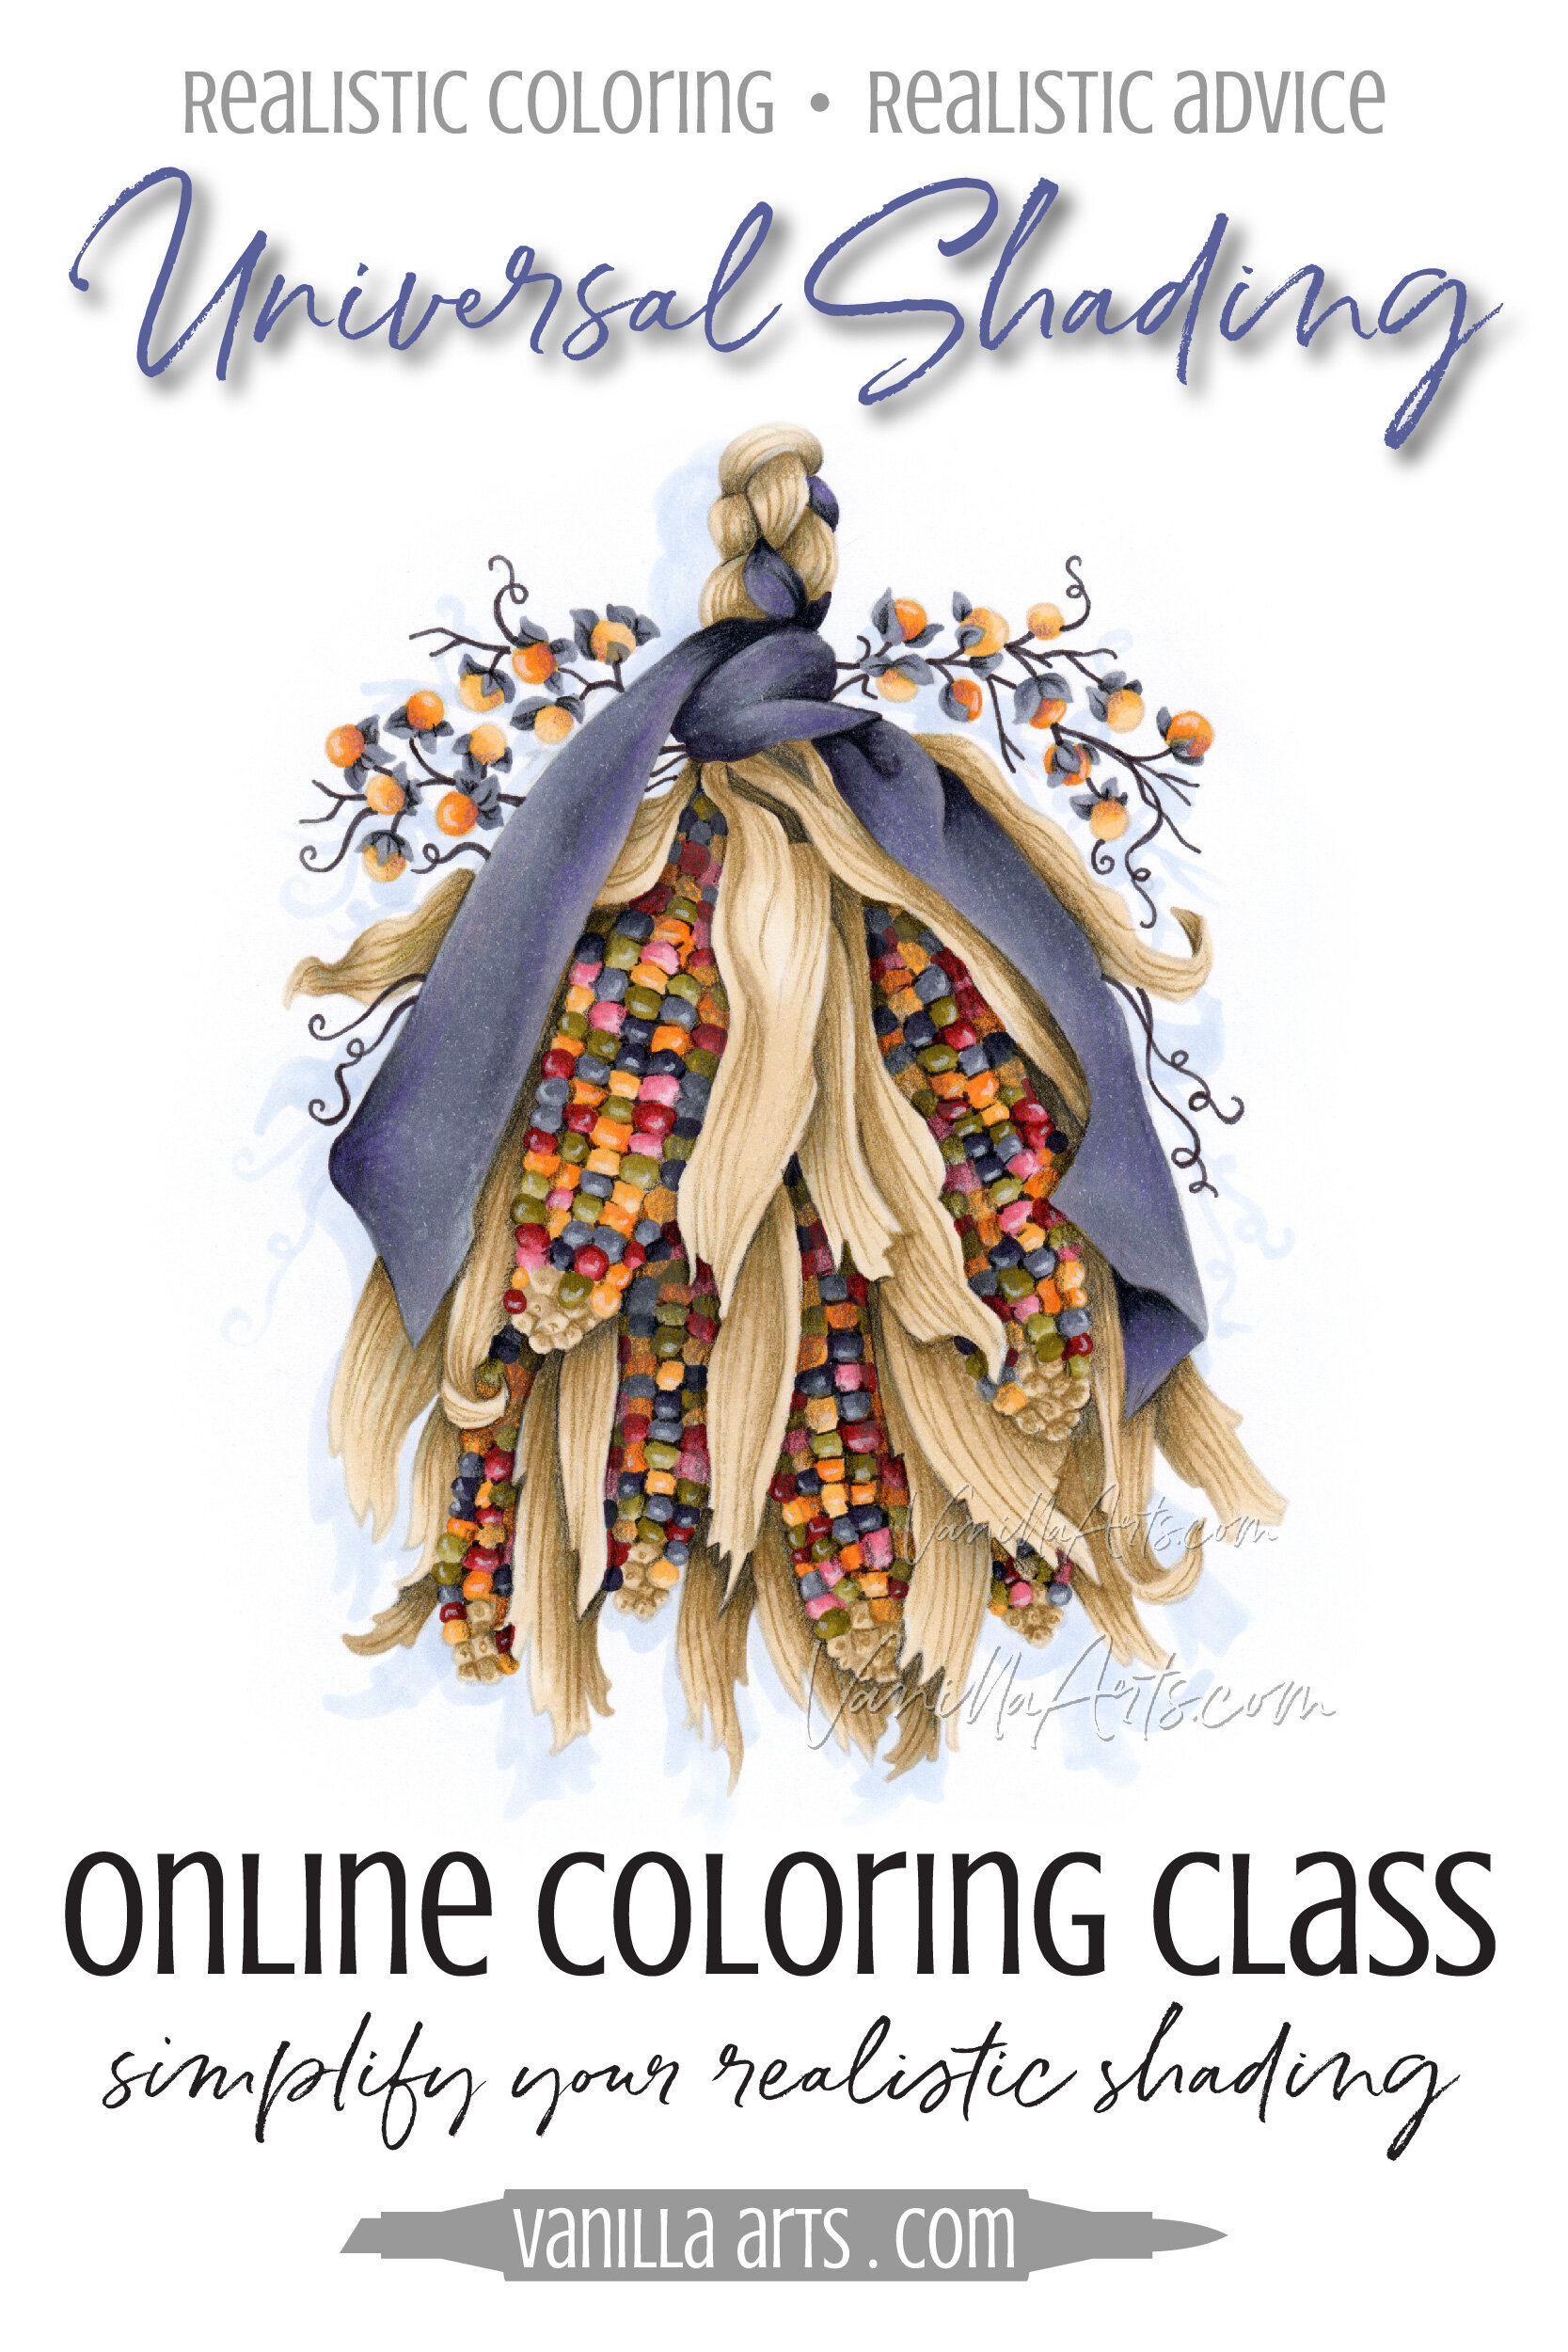 Copic Marker Colored Pencil Shading Complex Objects Online Coloring Lesson Vanilla Arts Co